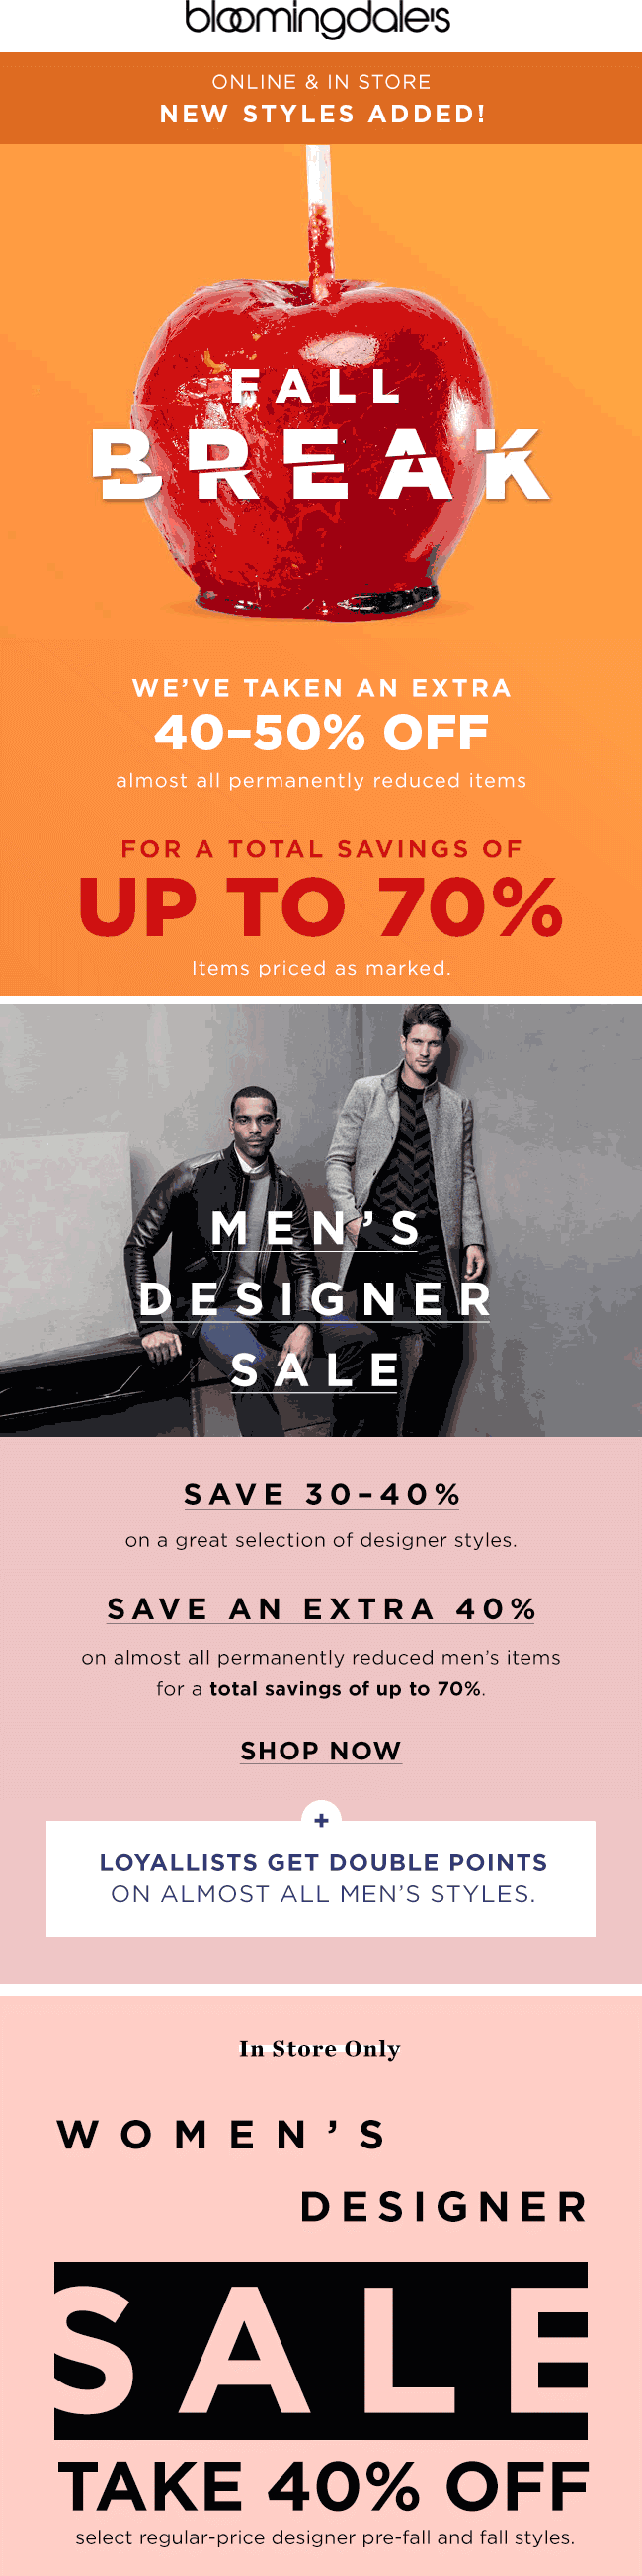 Bloomingdales.com Promo Coupon Extra 40-50% off clearance at Bloomingdales, ditto online